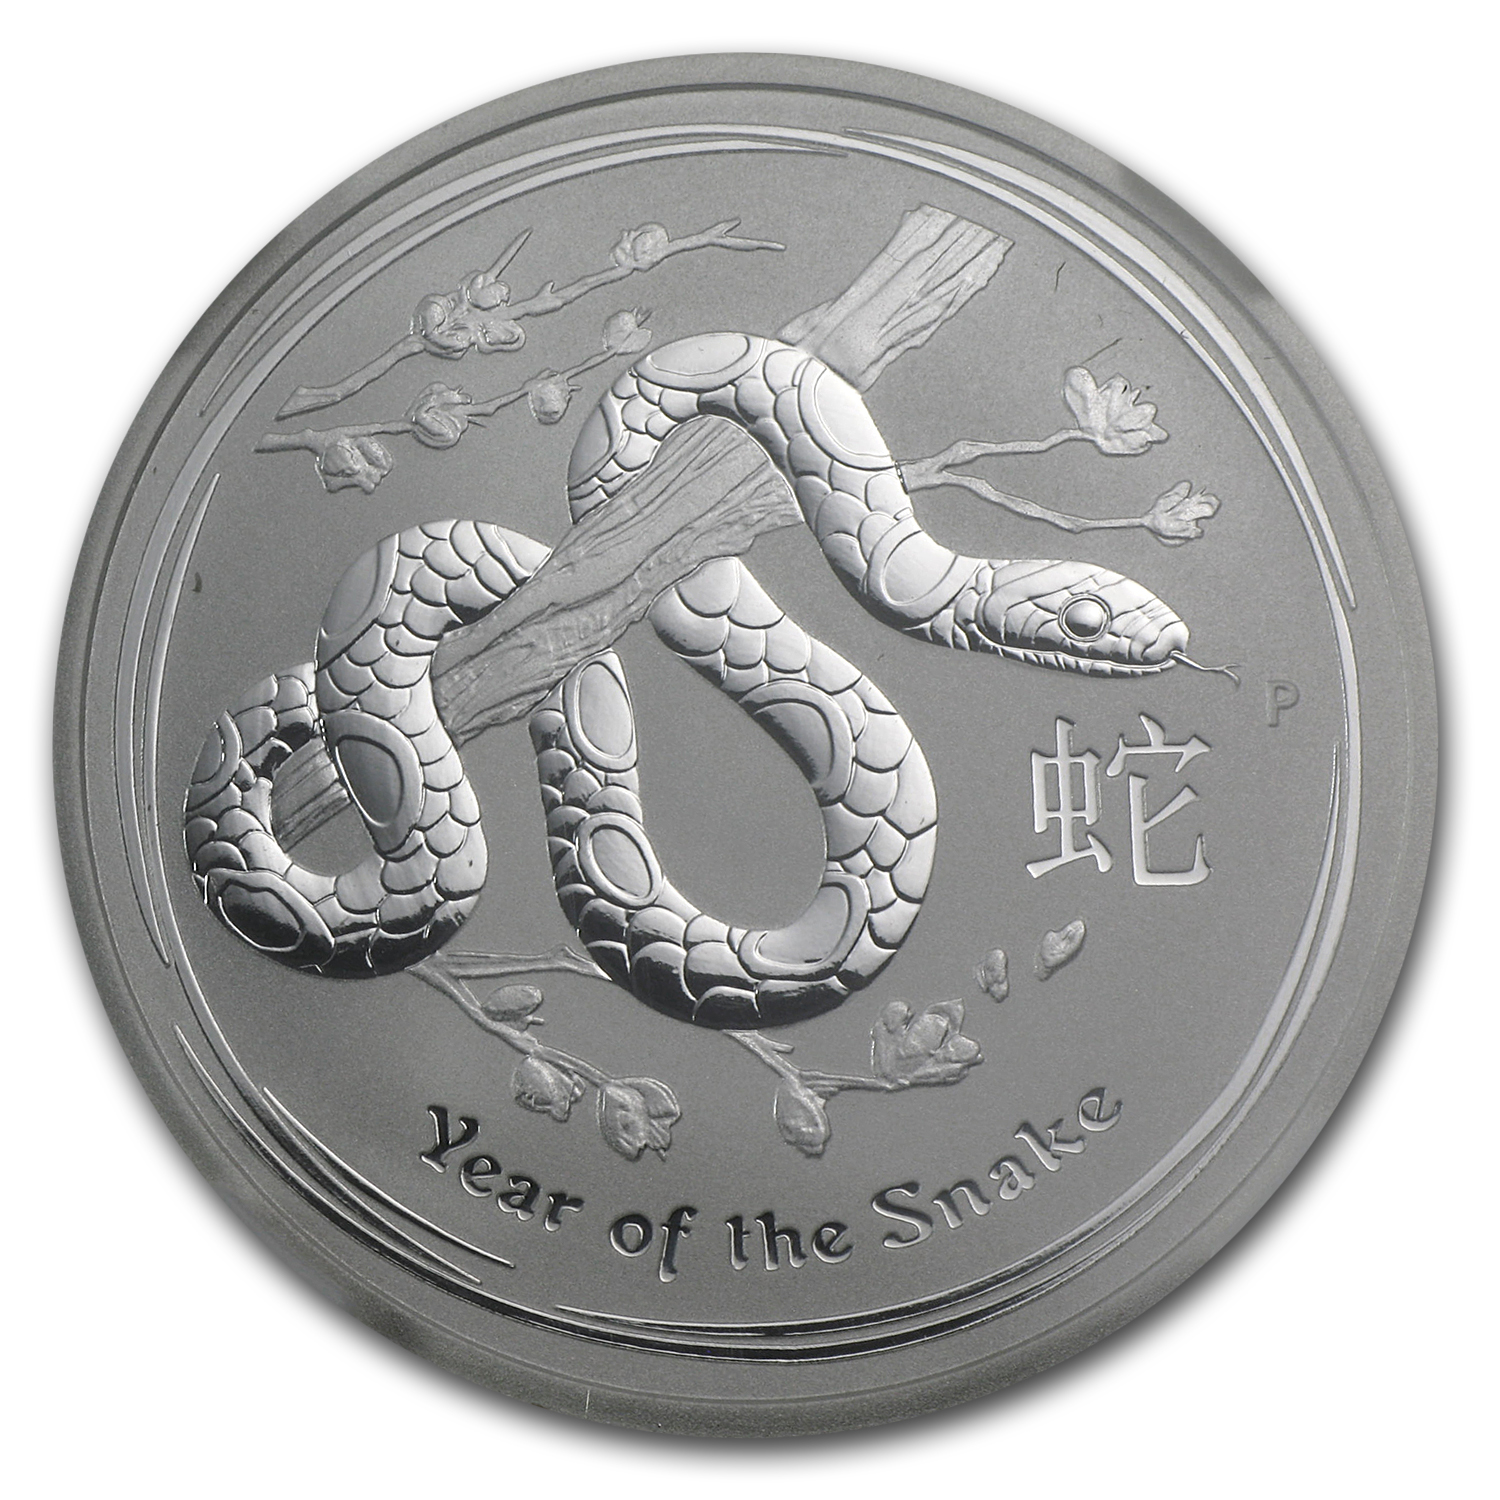 2013 Australia 1/2 oz Silver Year of the Snake MS-70 NGC (ER)